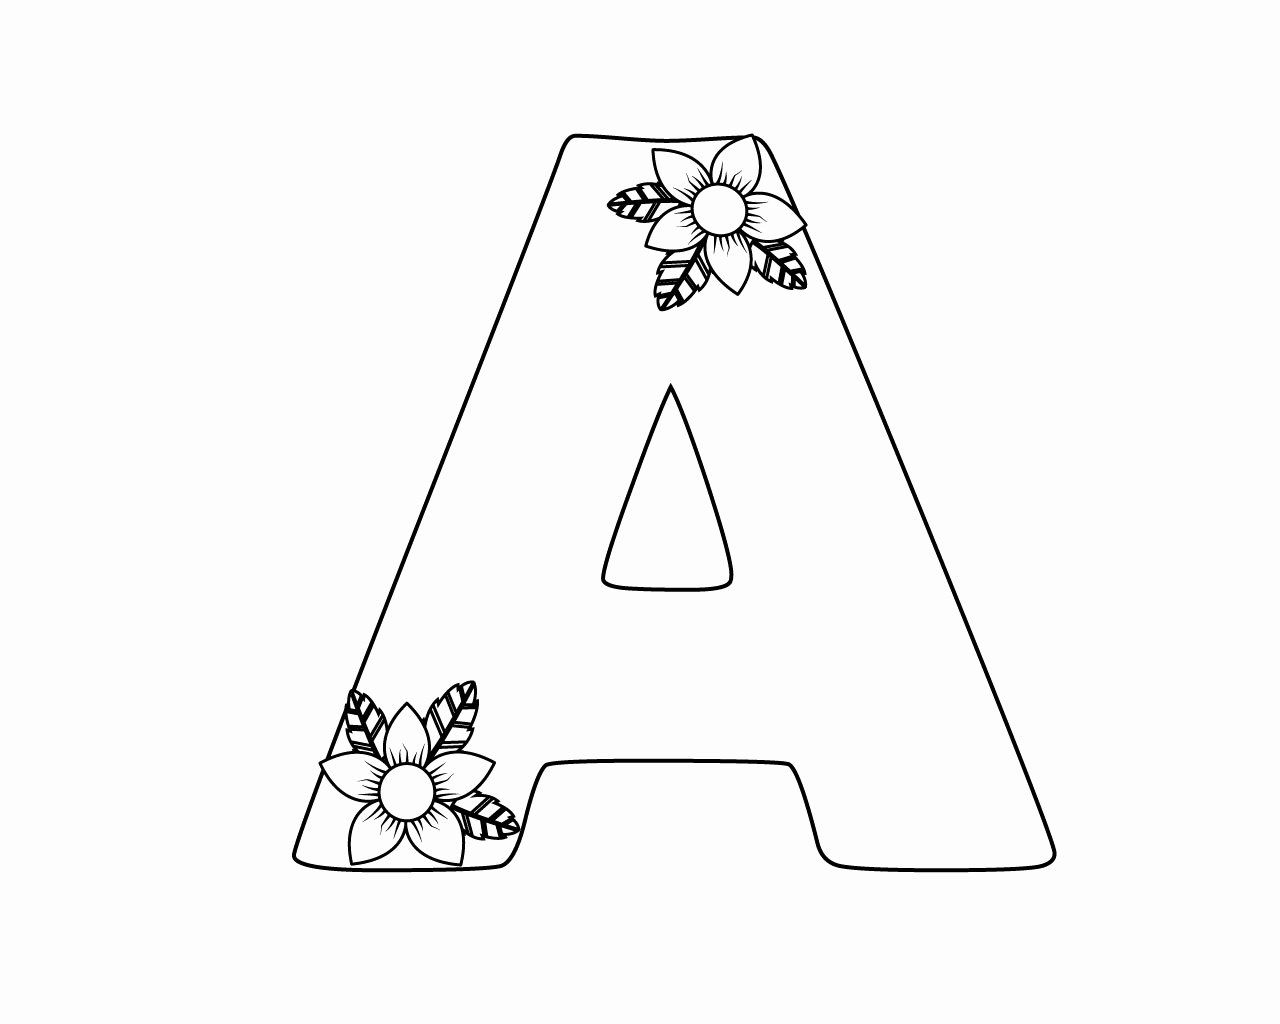 Pin By Sherry Stephan On Alphabet Lettering Printables Letter A Coloring Pages Coloring Pages Printable Alphabet Letters